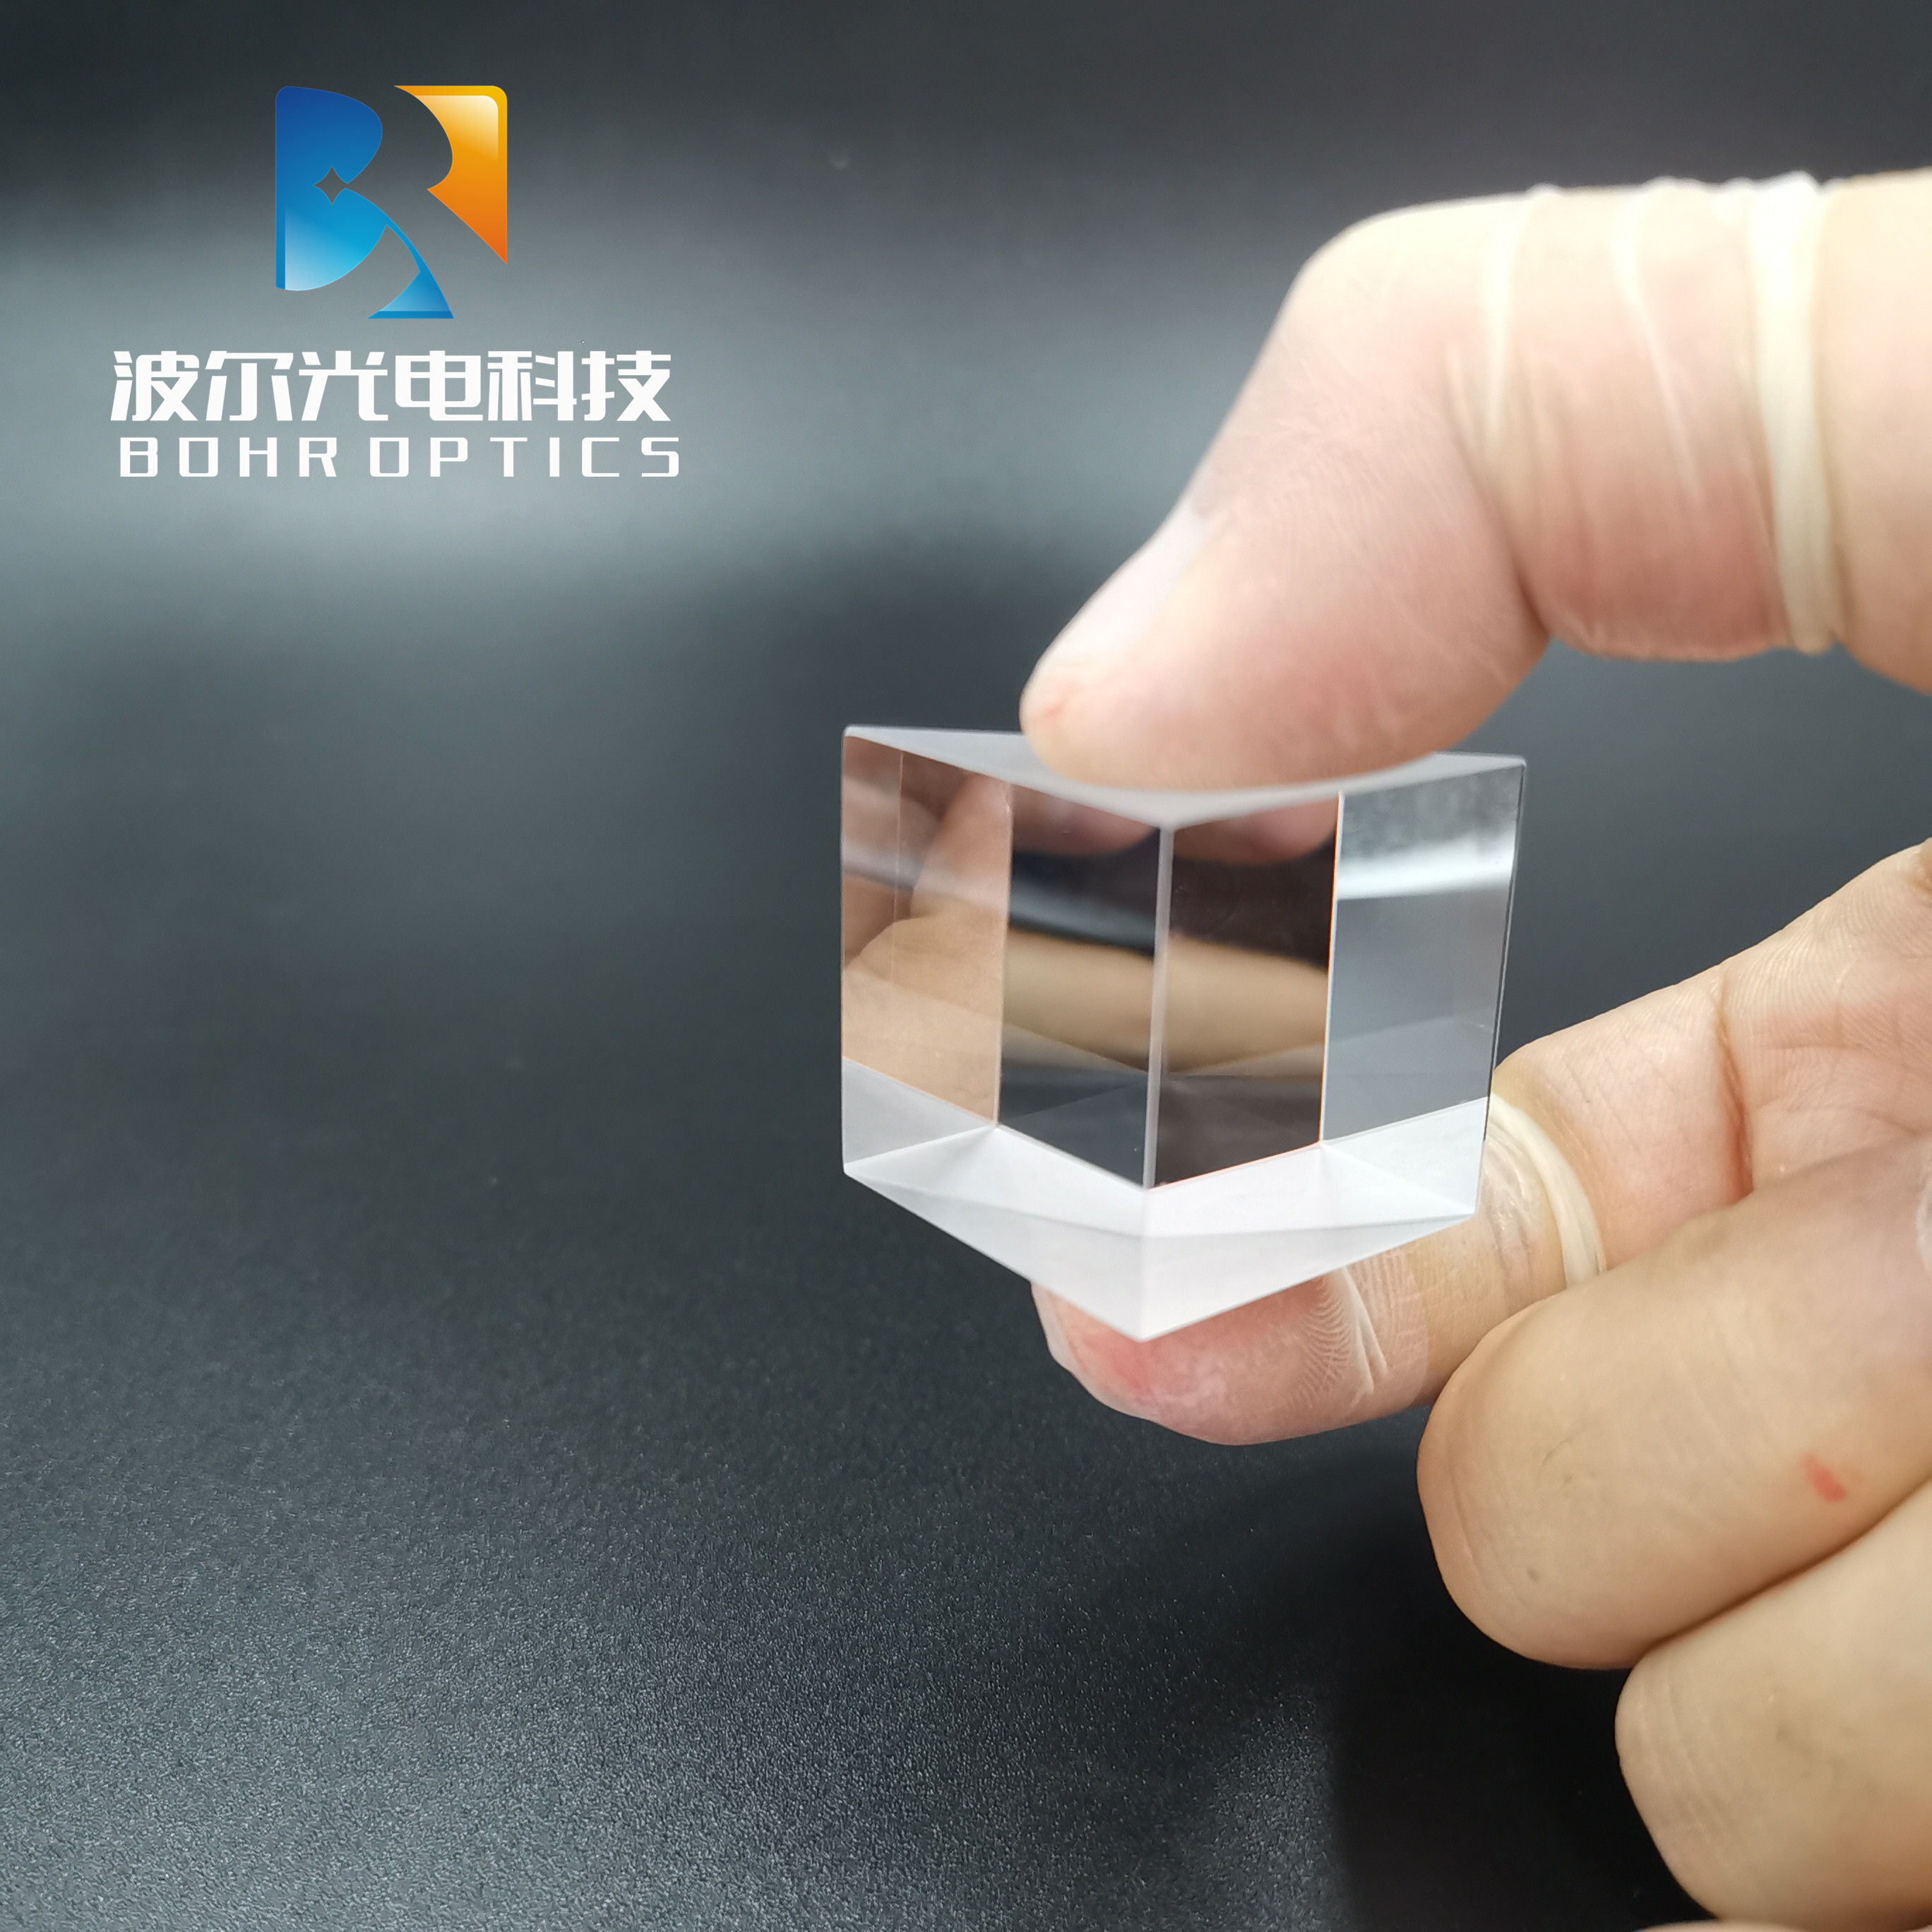 10x10x10mm Right Angle Prism Coating AL N-BK7 (K9) Optical Components Glass for Precision Optical Instruments